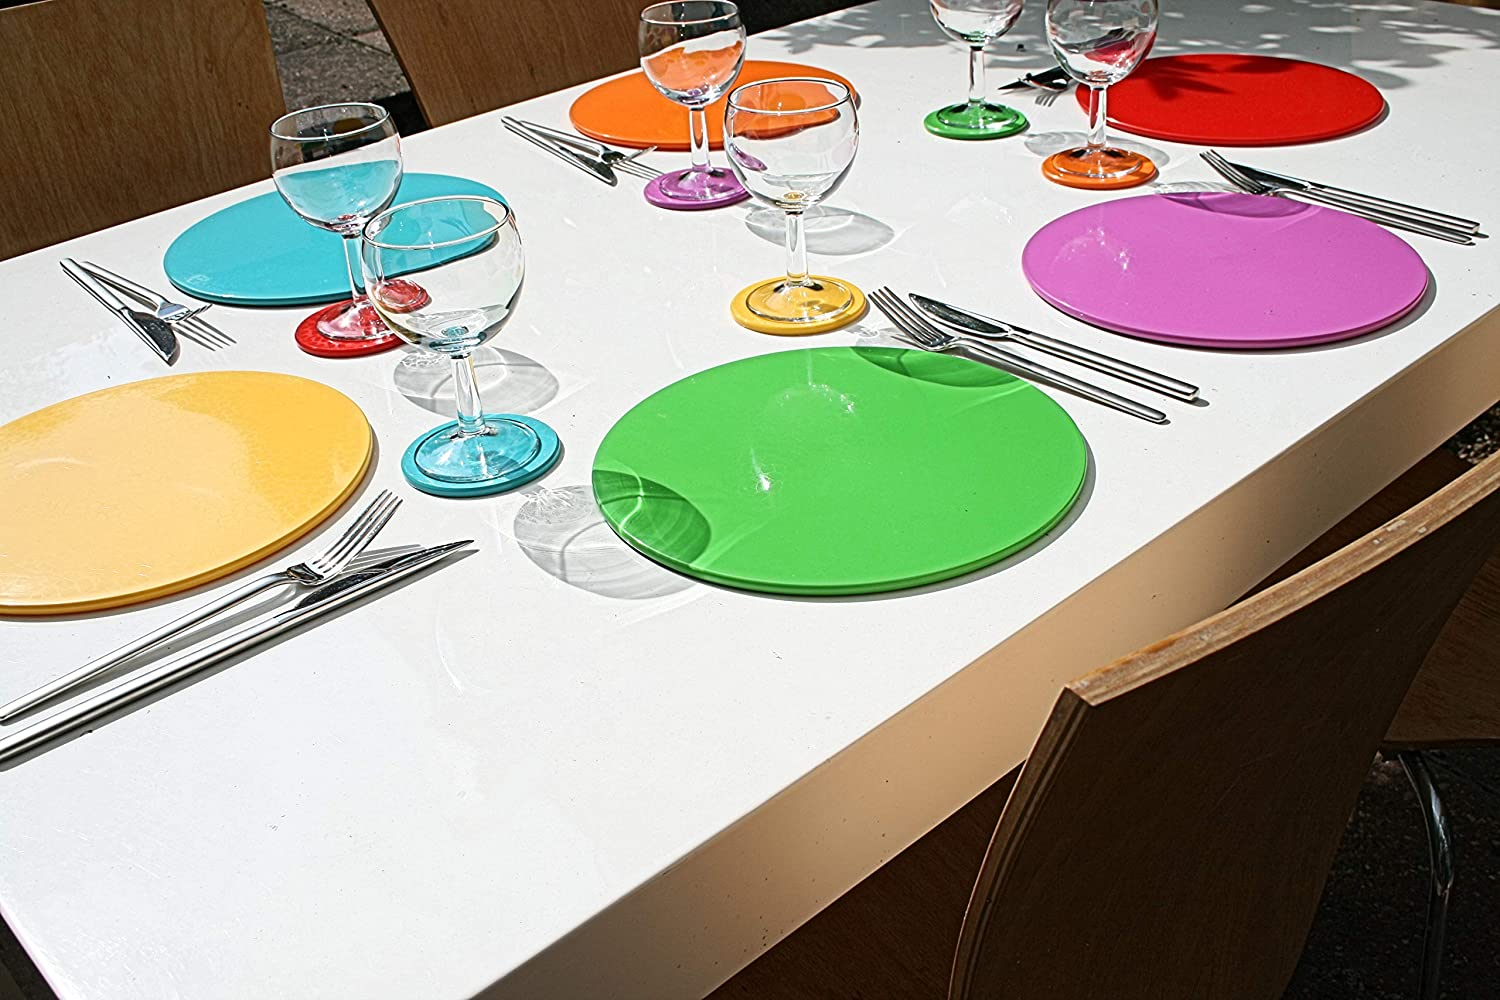 Top 6 Colours Below To See All Intech Products. intech-gecko Dishwasher Safe Placemats And Coasters Click Intech Jazz Up Your Table